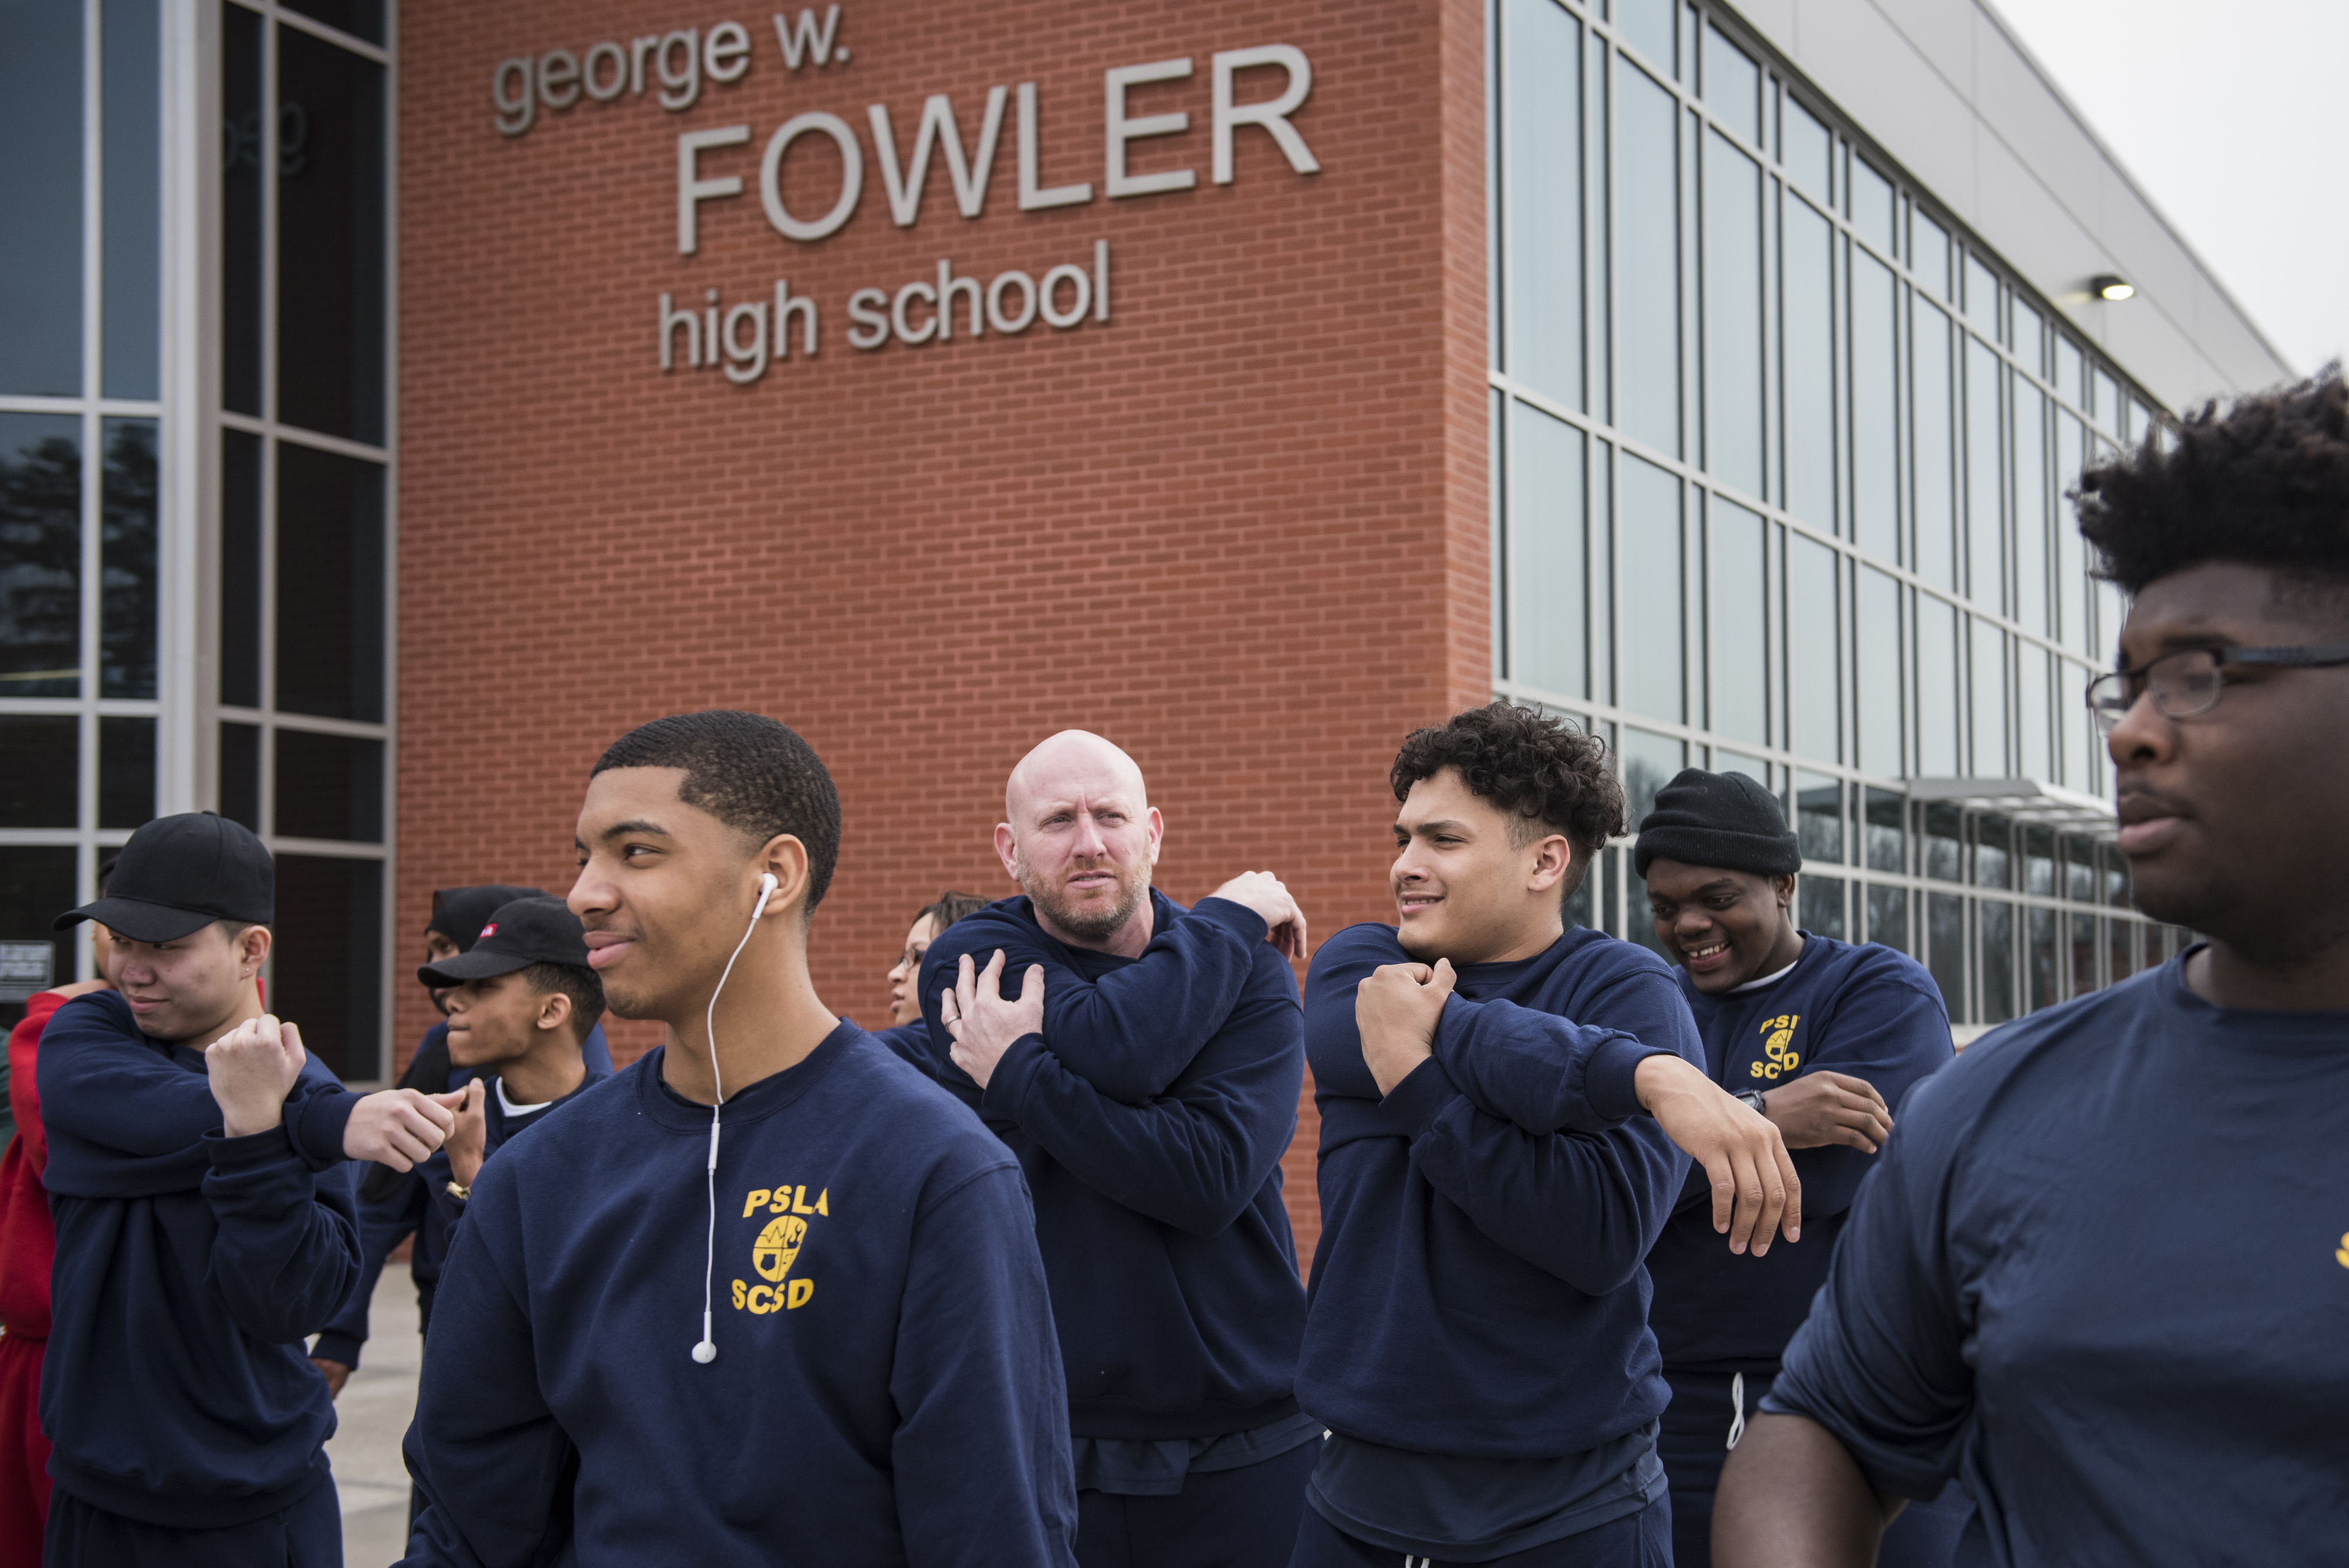 PSLA Fowler law enforcement students begin to warmup for PT outside.